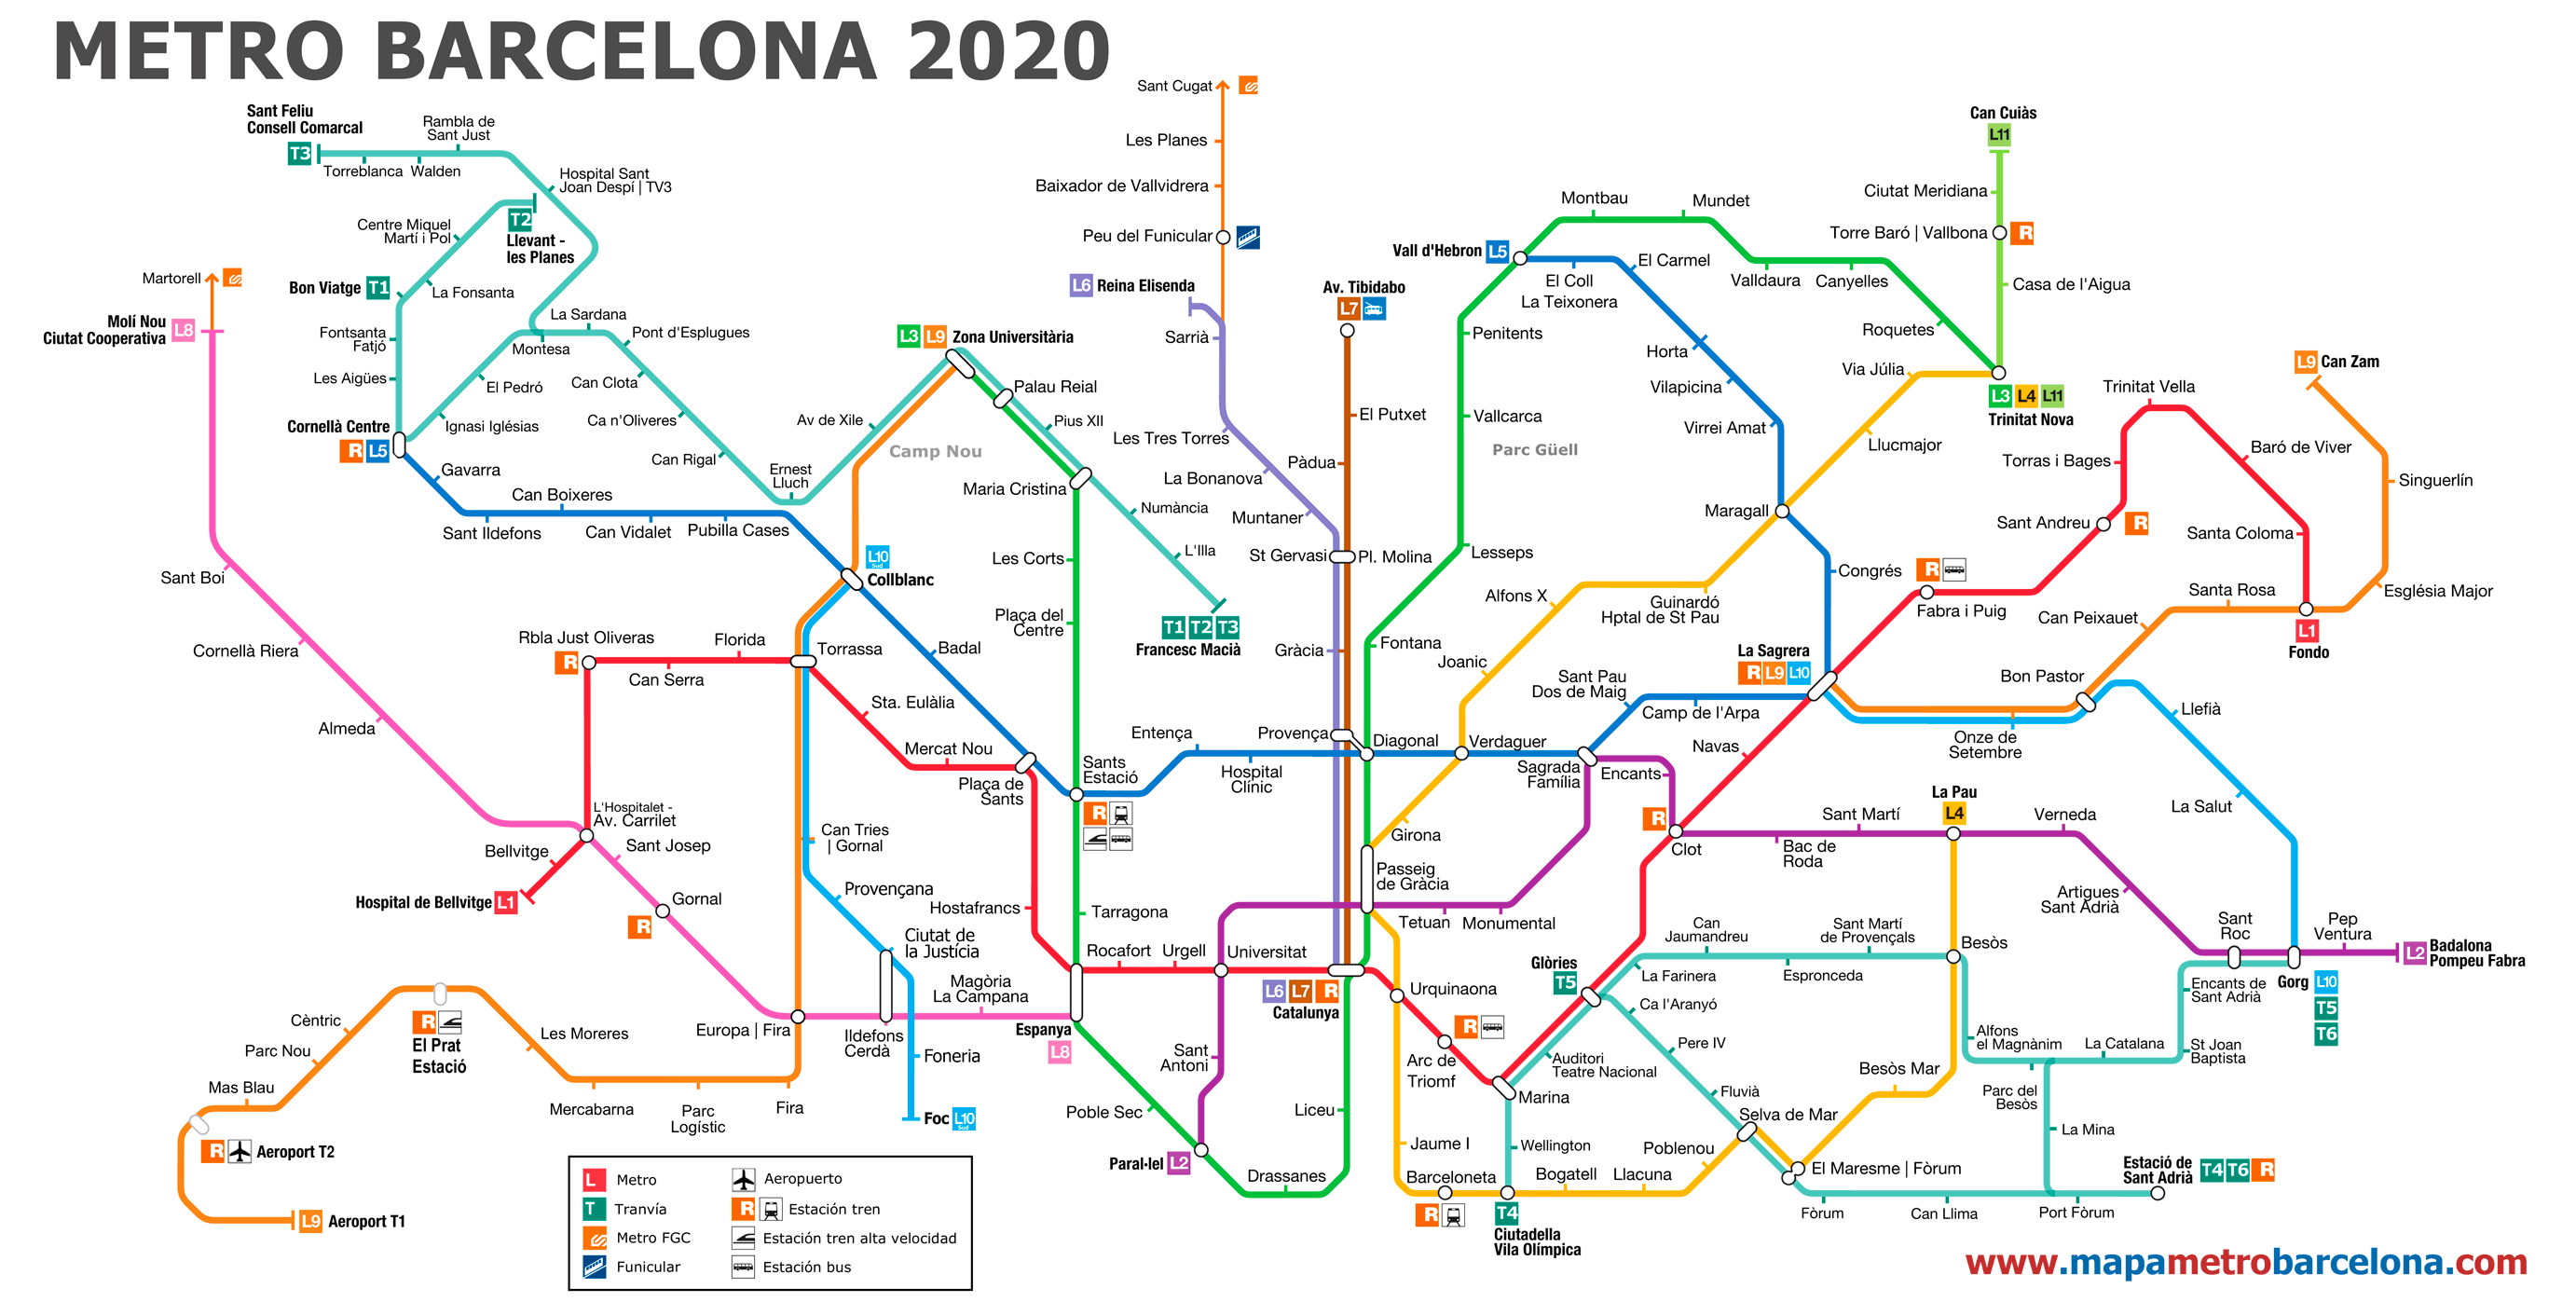 Subway Map Of Barcelona Spain.Metro Map Of Barcelona 2019 The Best